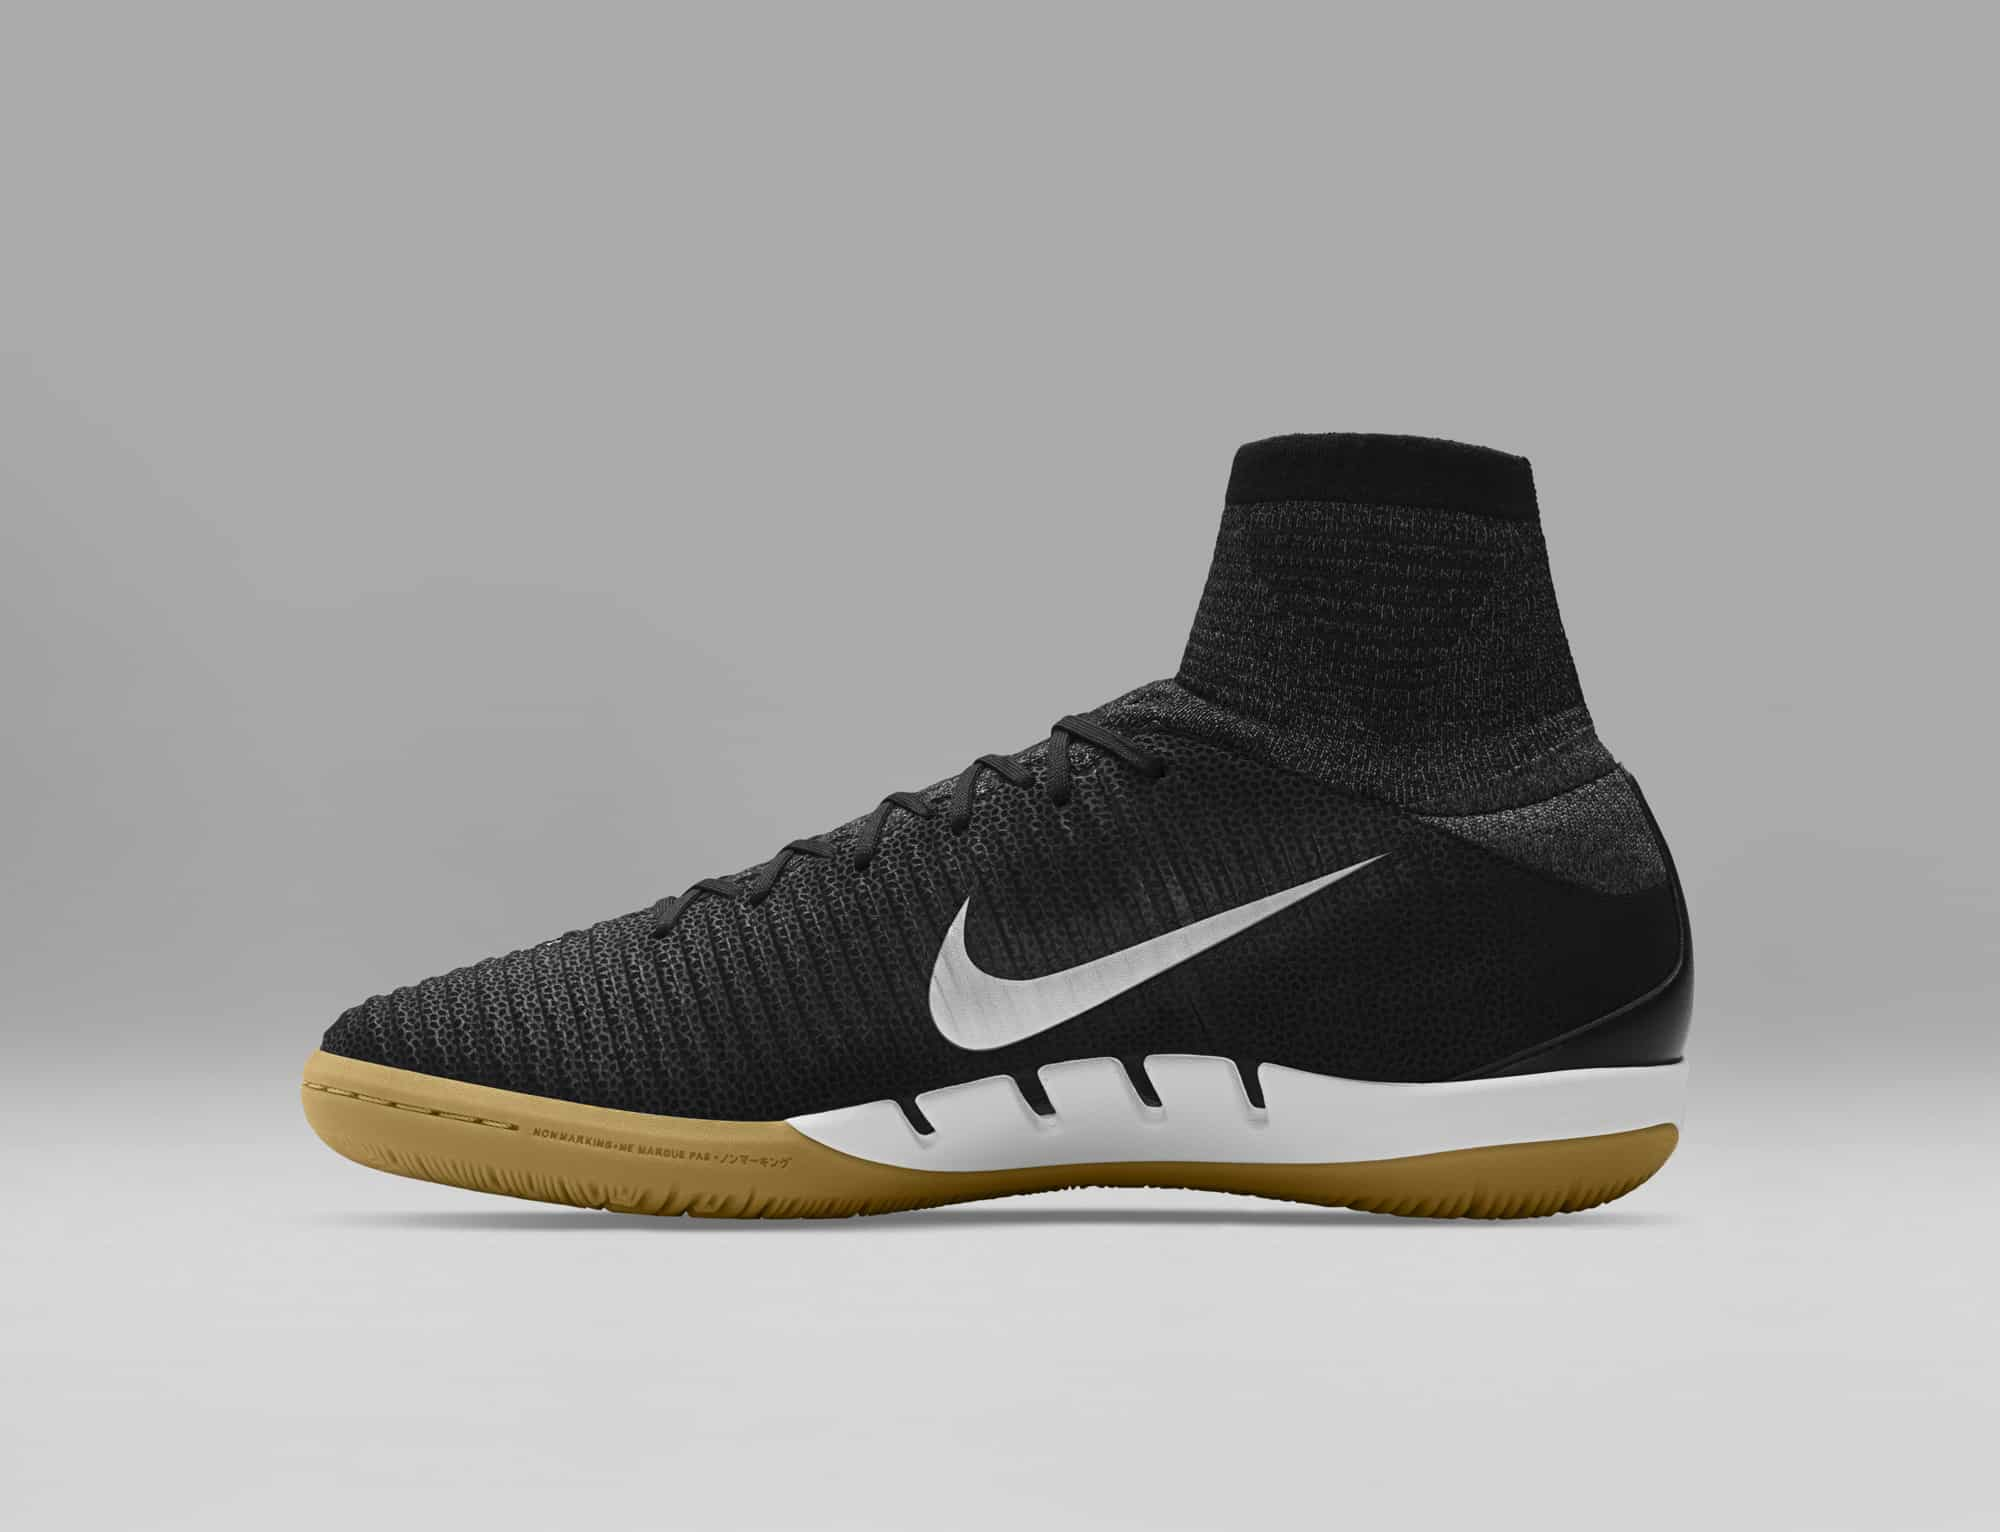 chaussures-football-nike-mercurialx-proximo-2-tech-craft-img1